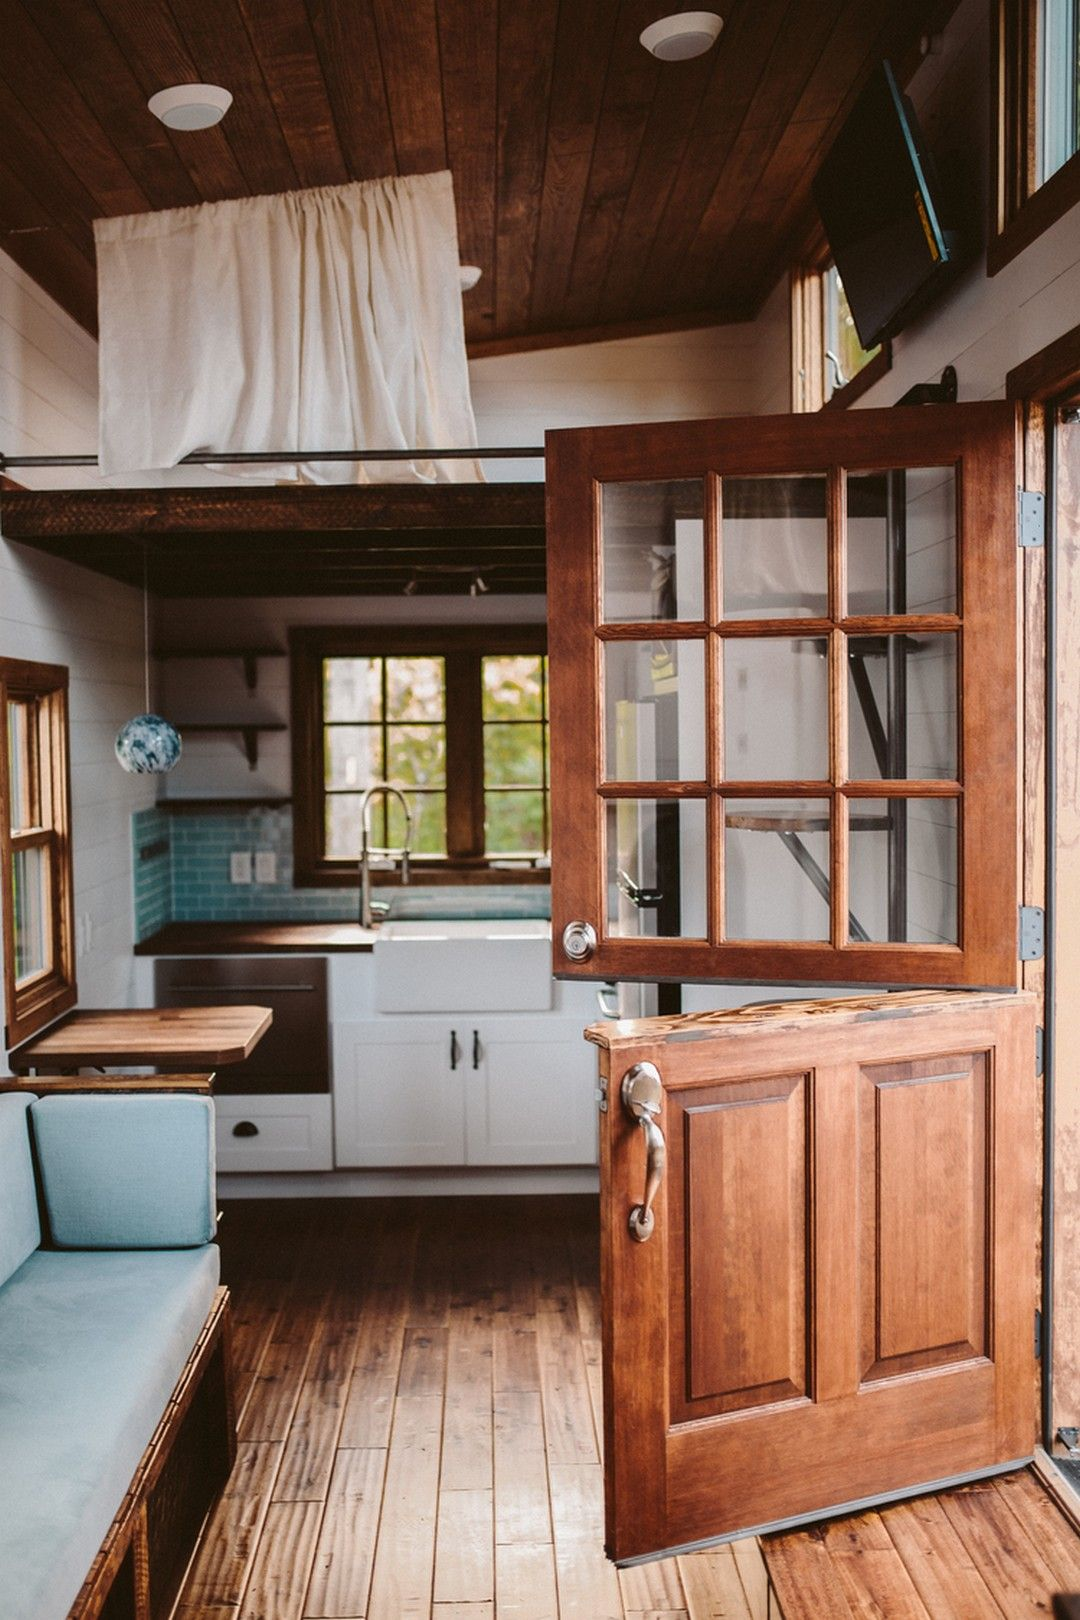 62 Diy Tiny House Storage And Organization Ideas On A Budget Small